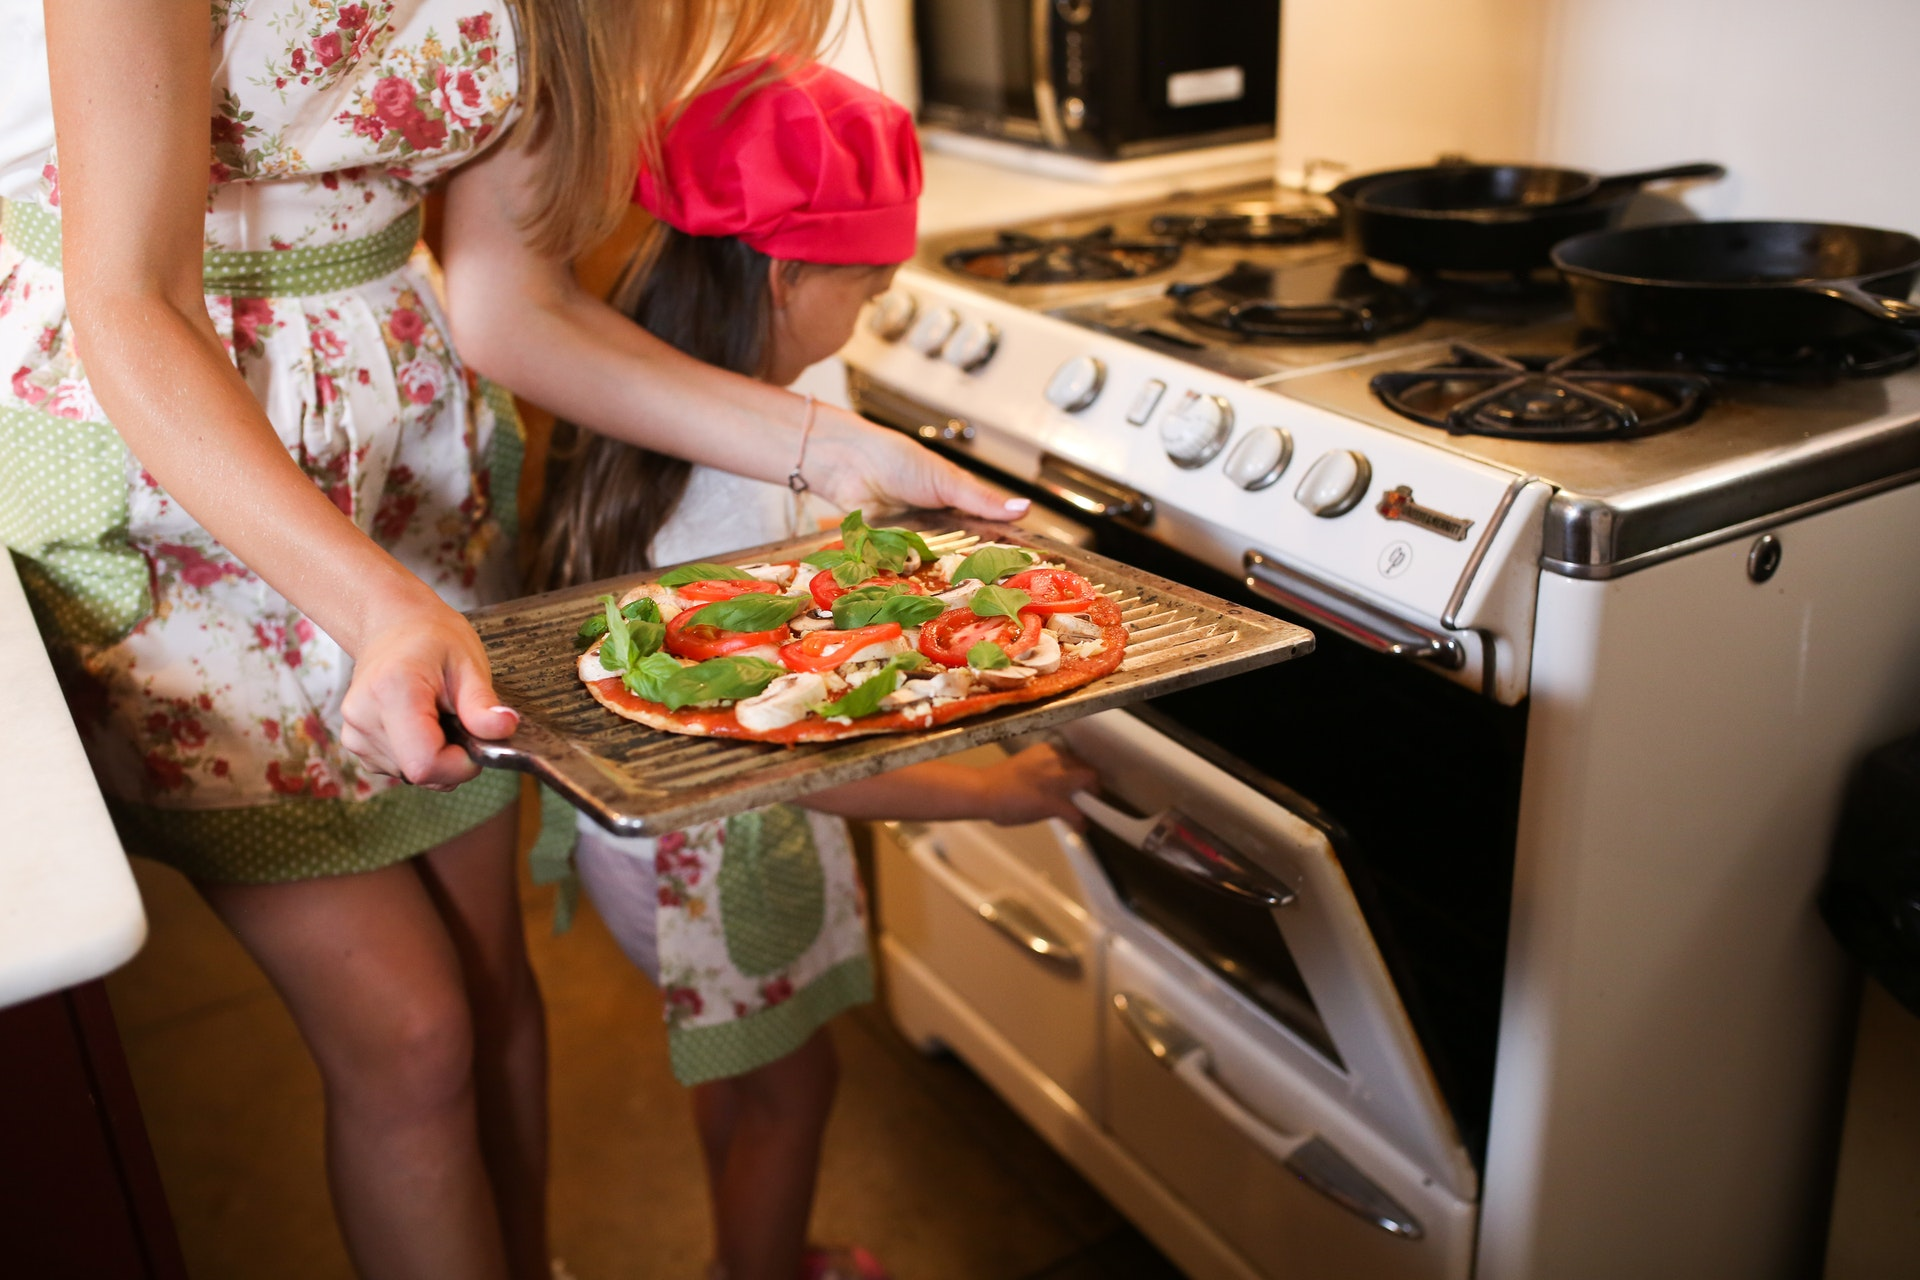 Easy Recipe Ideas to Make This Summer in Your Alfresco Pizza Oven